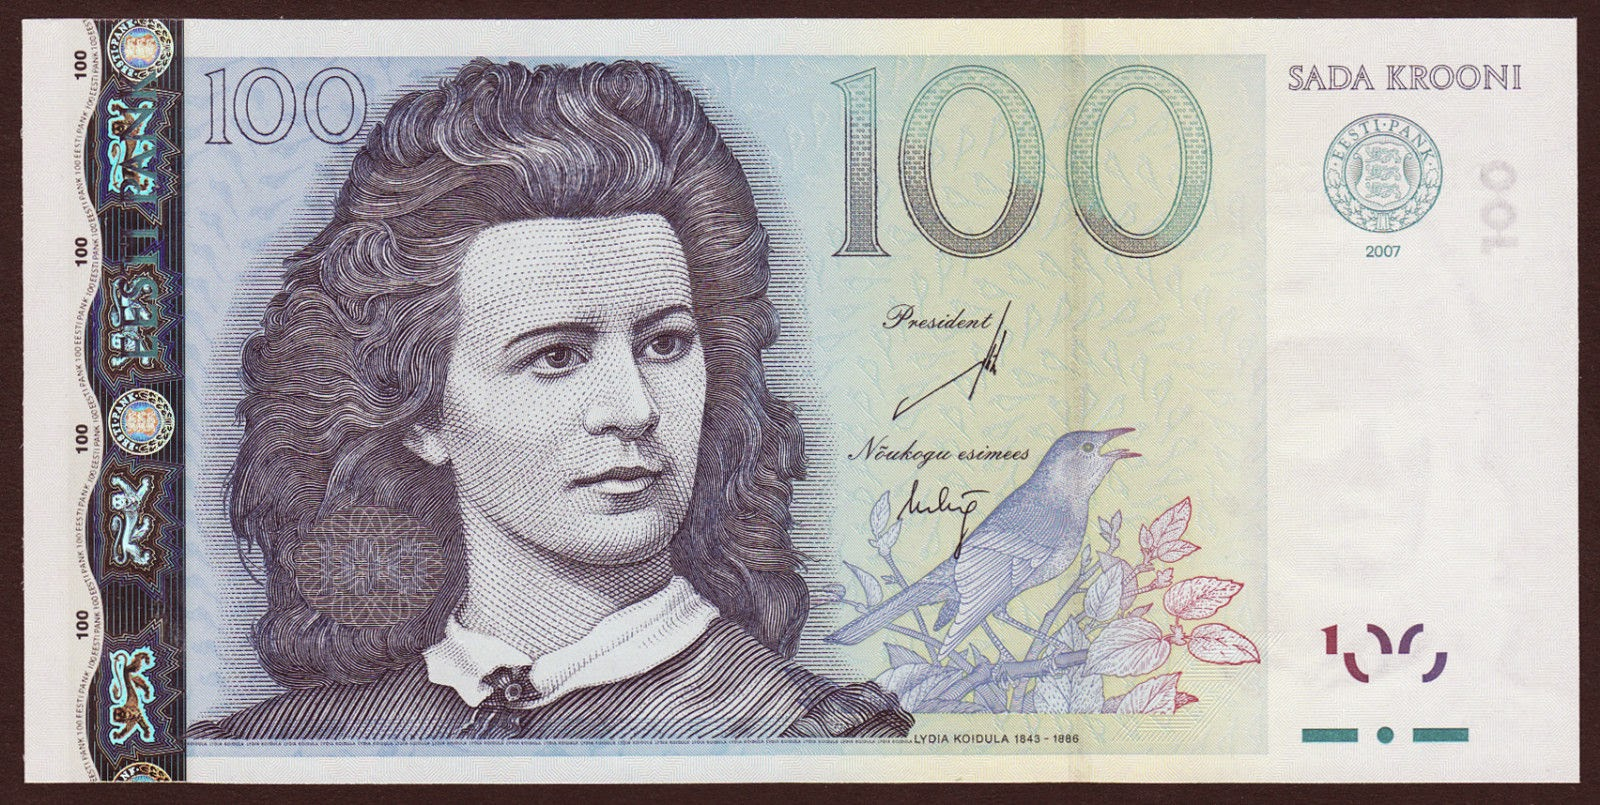 Estonia currency money 100 krooni banknote, Lydia Koidula